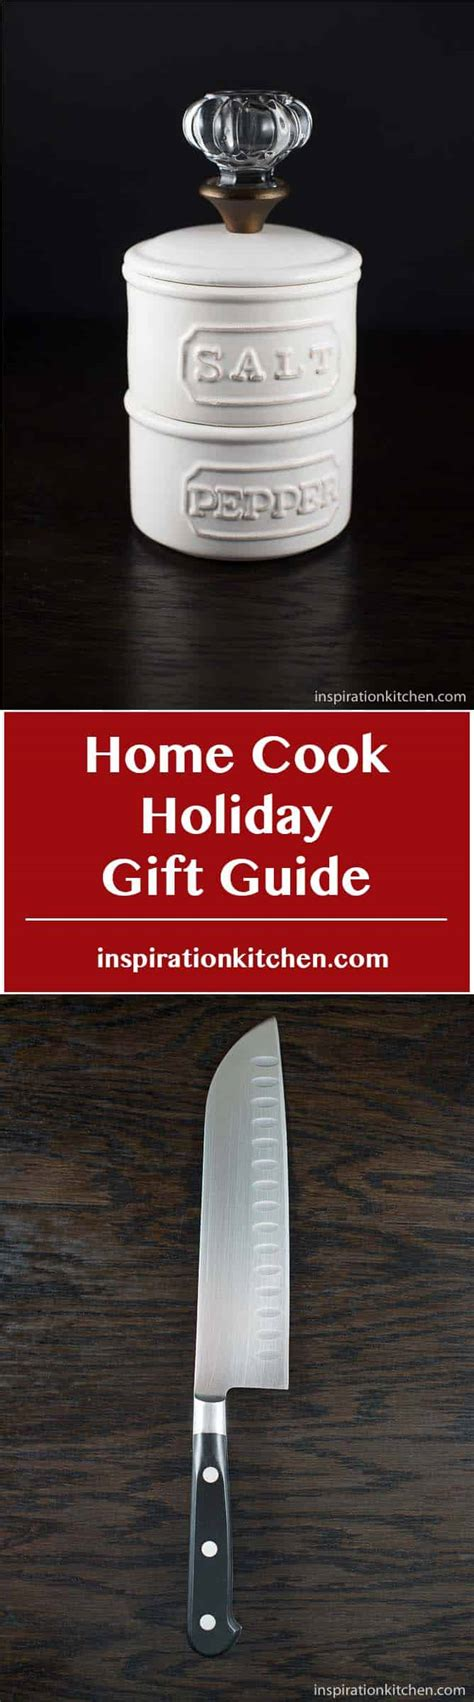 home cook holiday gift guide 2016 inspiration kitchen